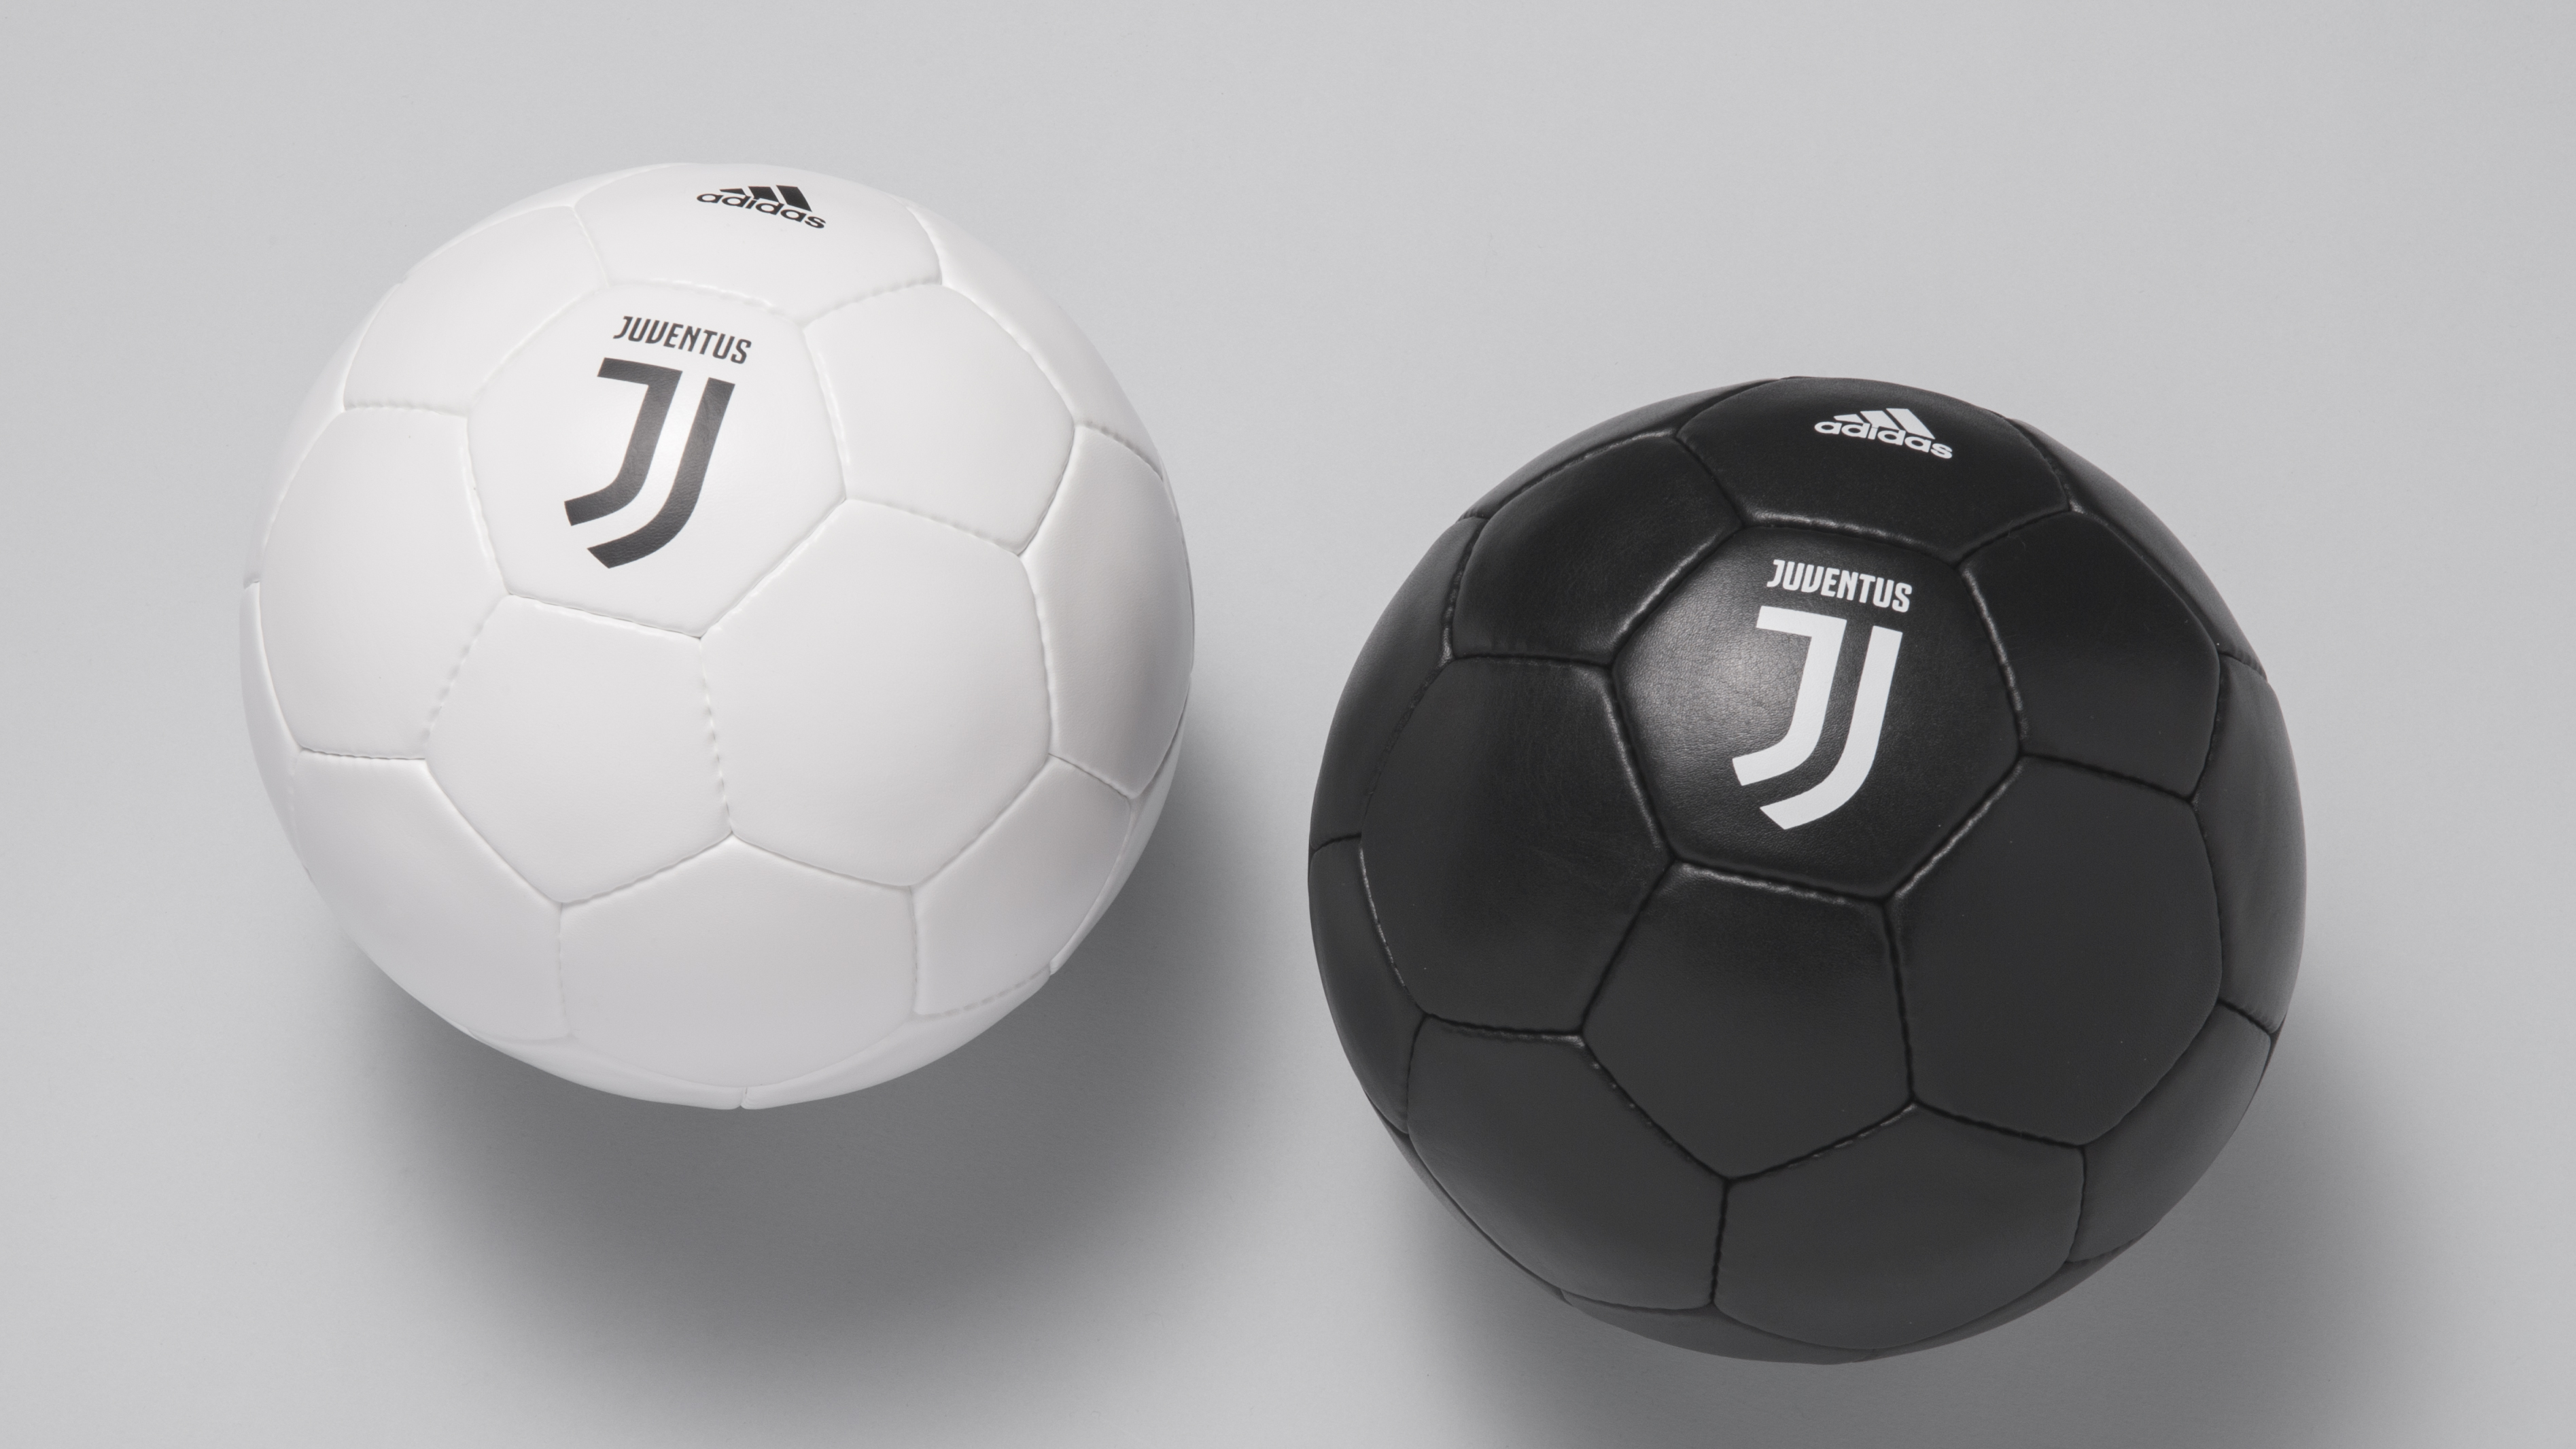 Juventus Black and White Soccer Ball - Interbrand Milan